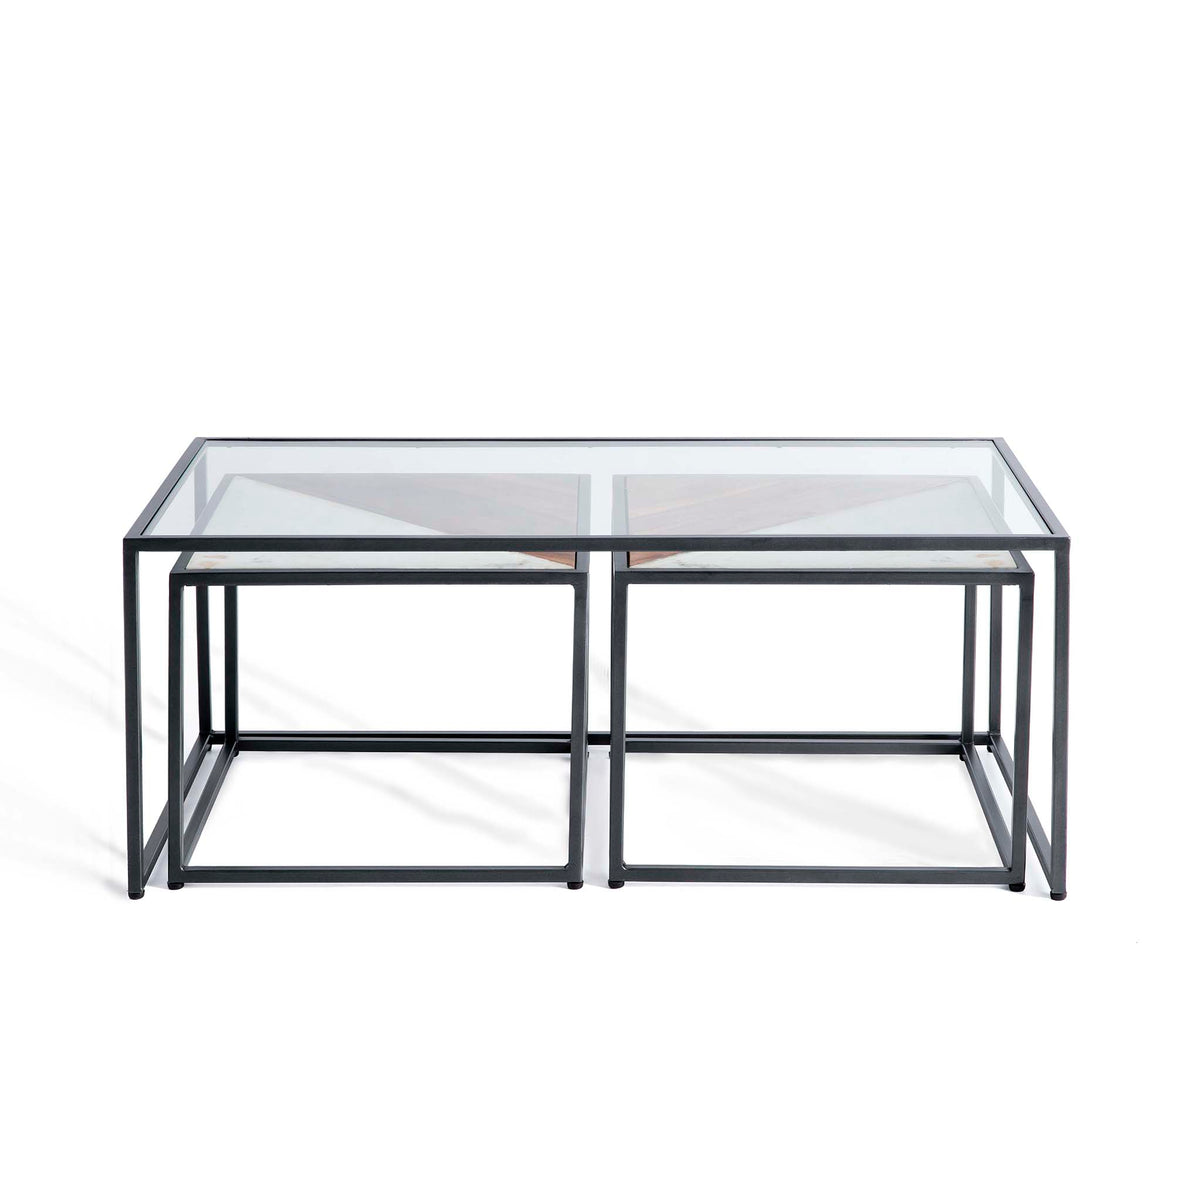 Kandla Glass Topped Coffee Table with White Marble & Wood Nested Tables and grey Bases by Roseland Furniture